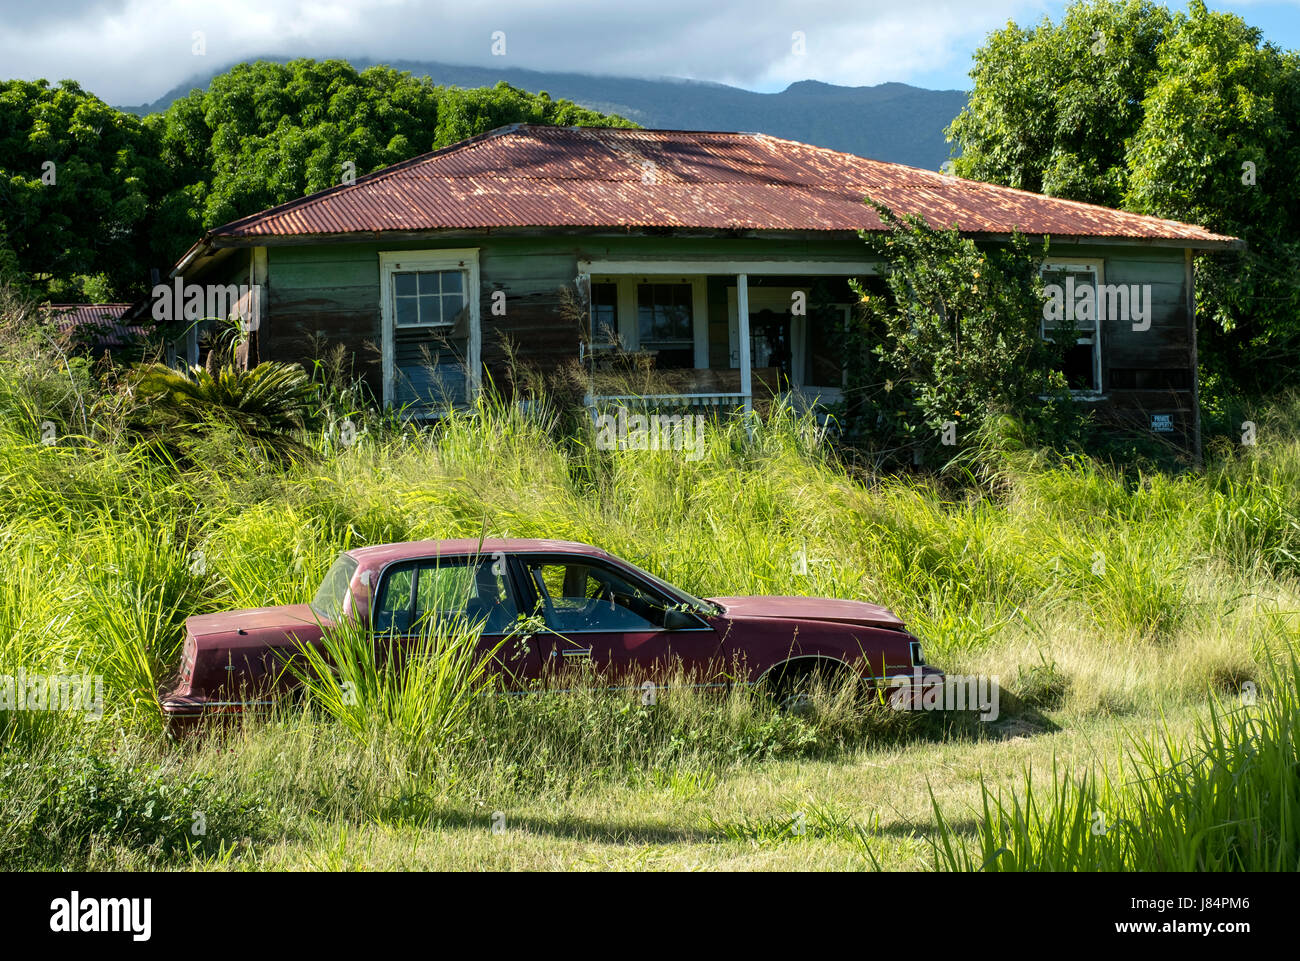 an abandoned car sits in a yard next to a derelict property just off the Pi'ilani Highway in south Maui, Hawaii - Stock Image